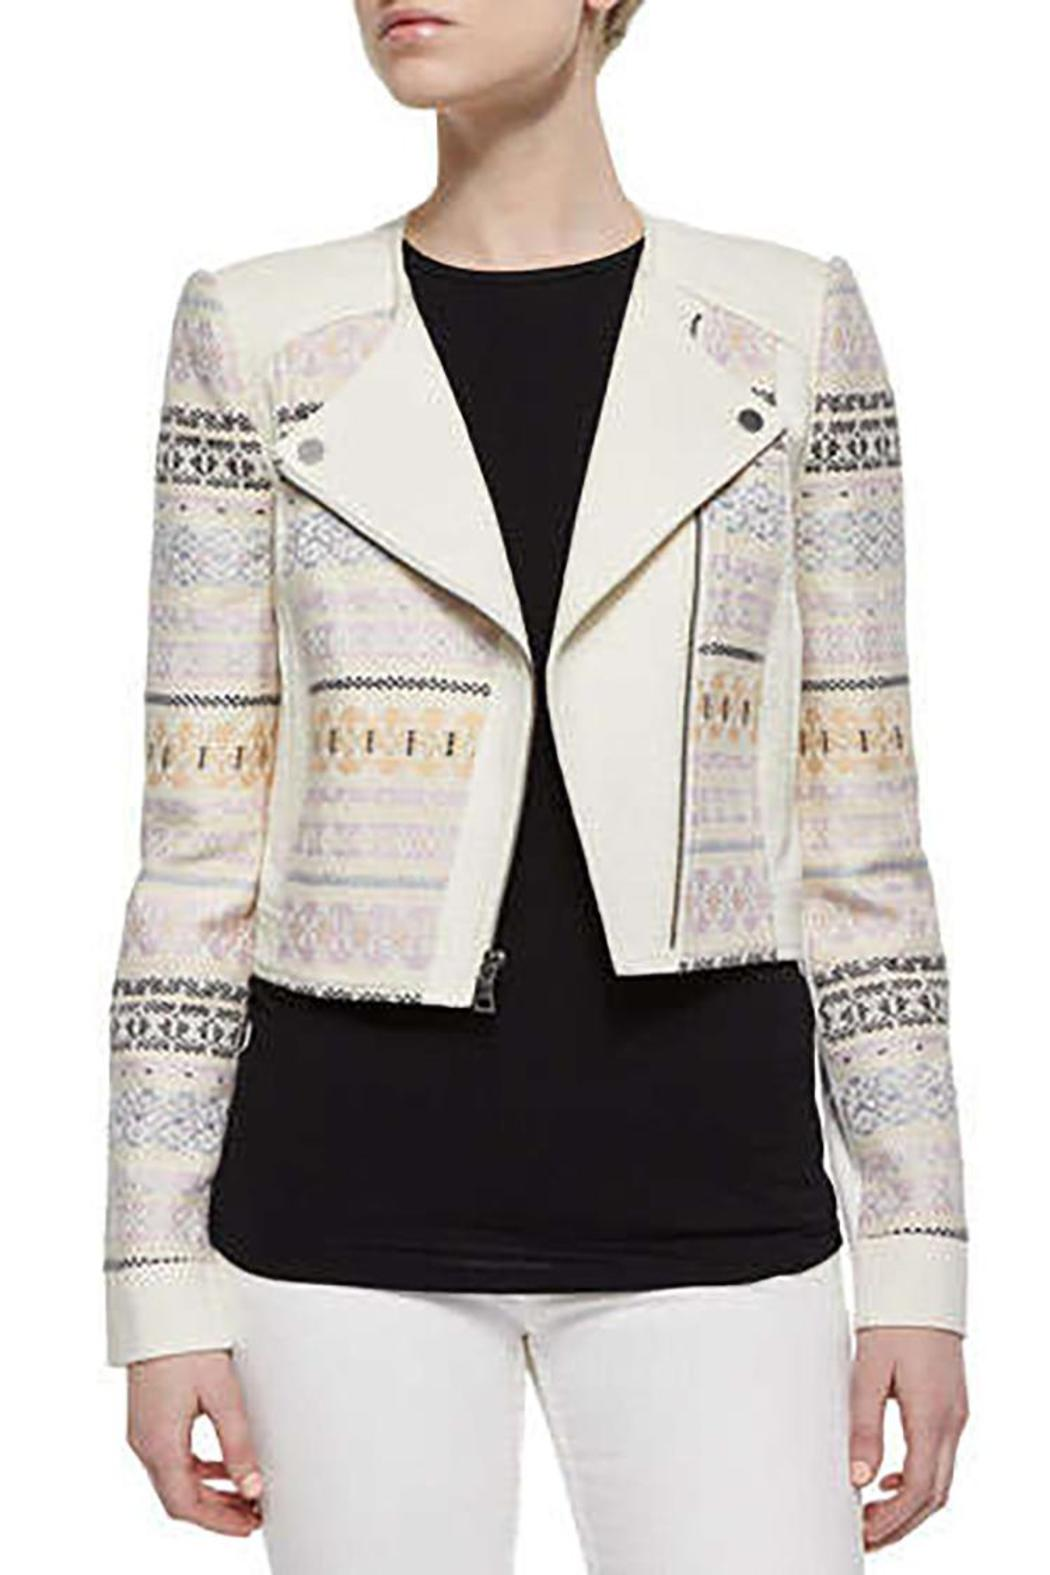 a37b38923b BCBG Max Azria Cody Embroidered Jacket from Florida by LoveRich ...